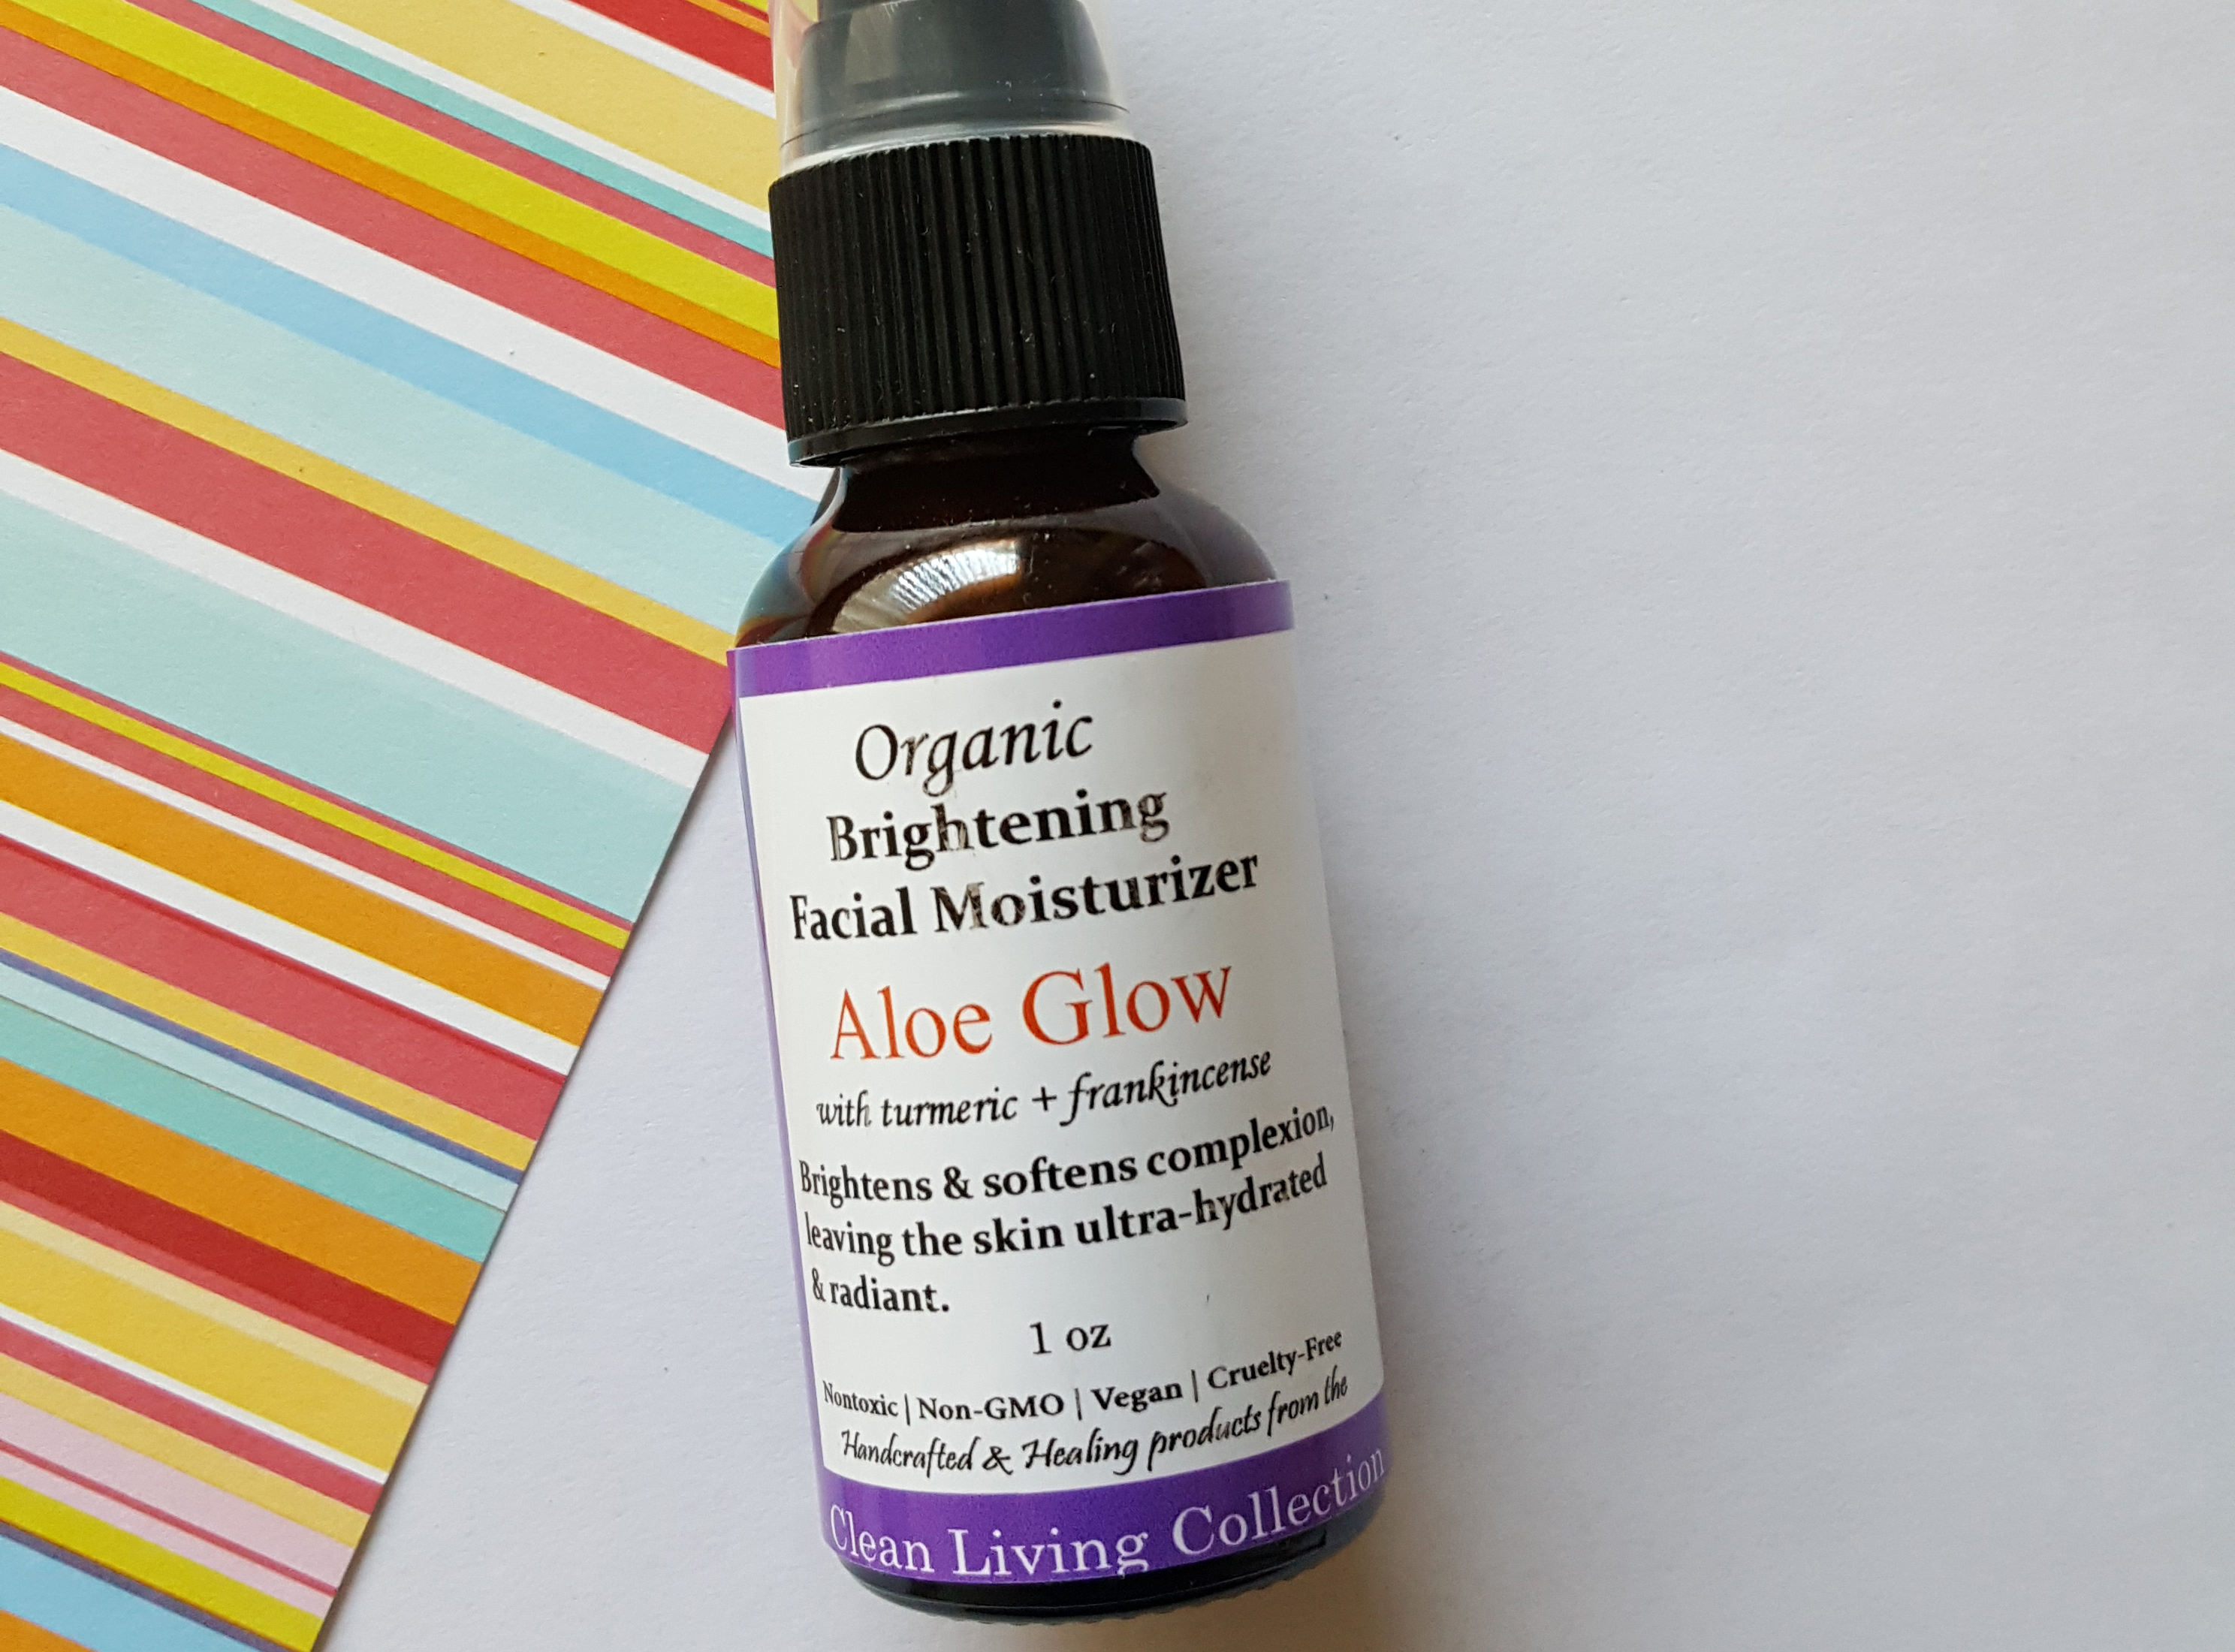 •	Clean Living Collection Organic Brightening Facial Moisturizer Aloe Glow